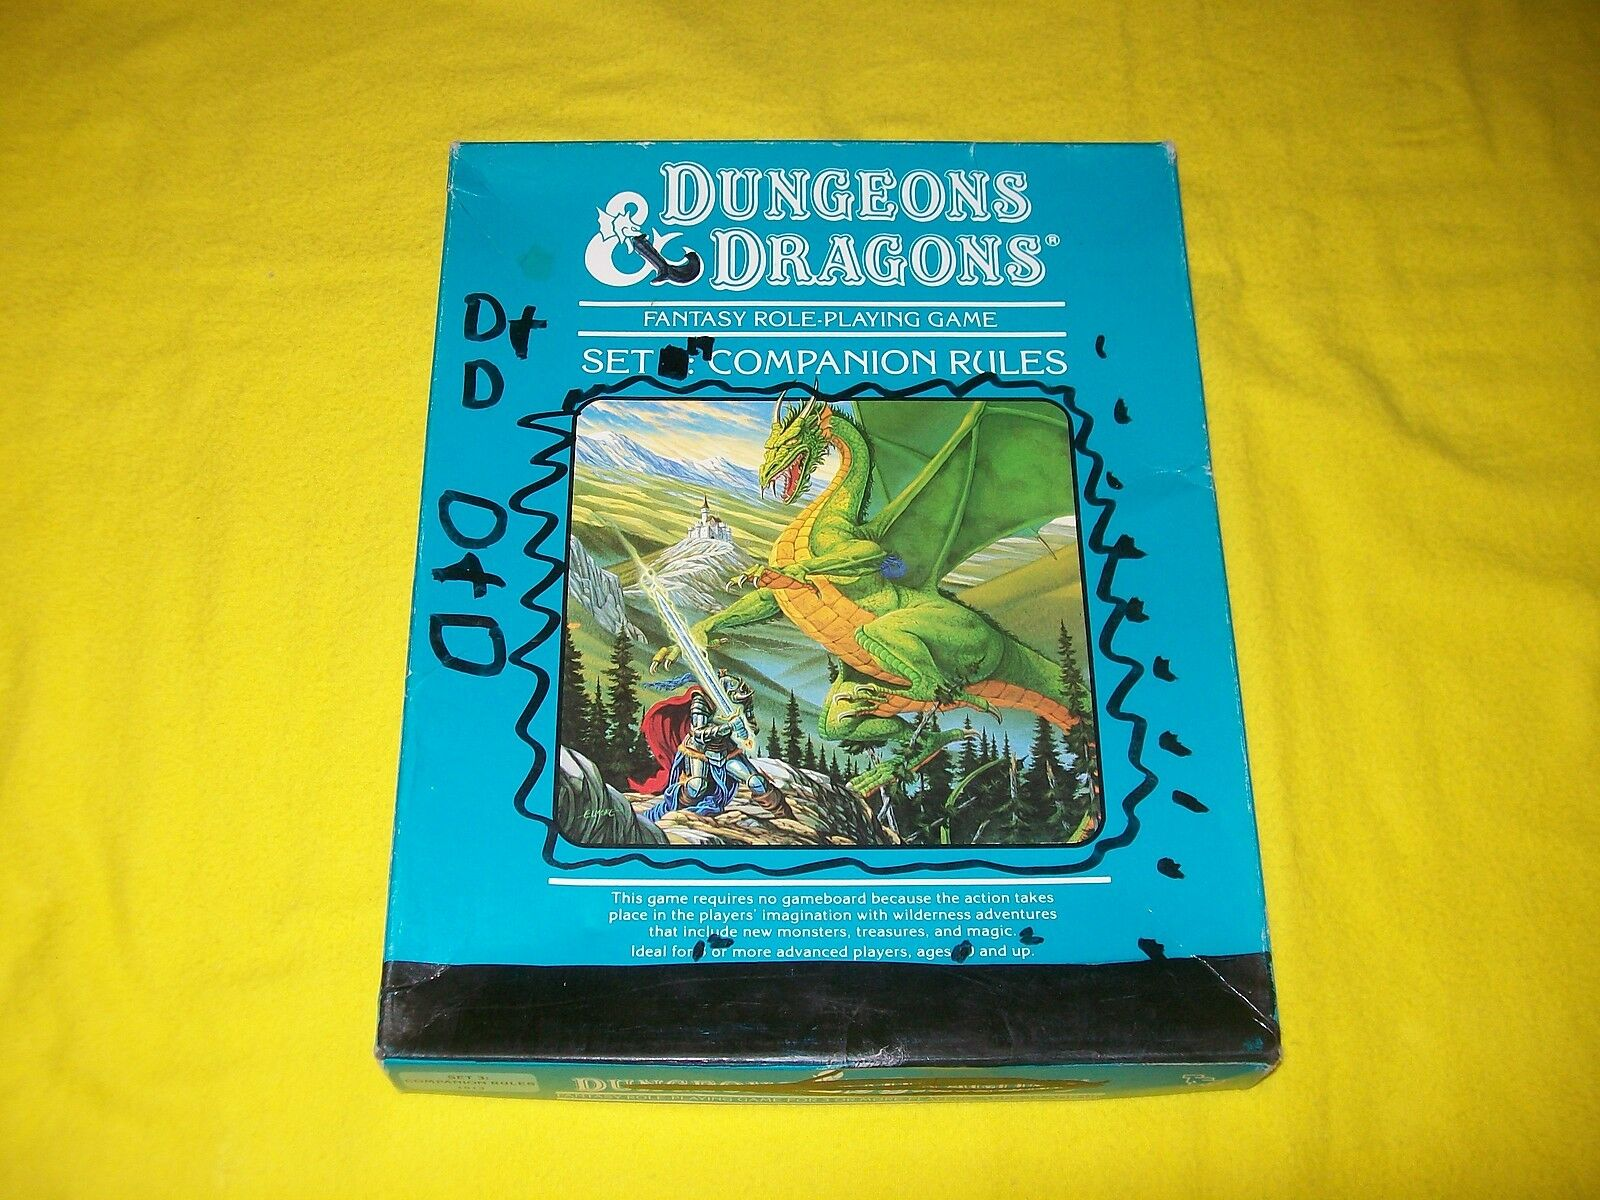 DUNGEONS & DRAGONS SET 3 COMPANION RULES BOX SET TSR 1013 - 1